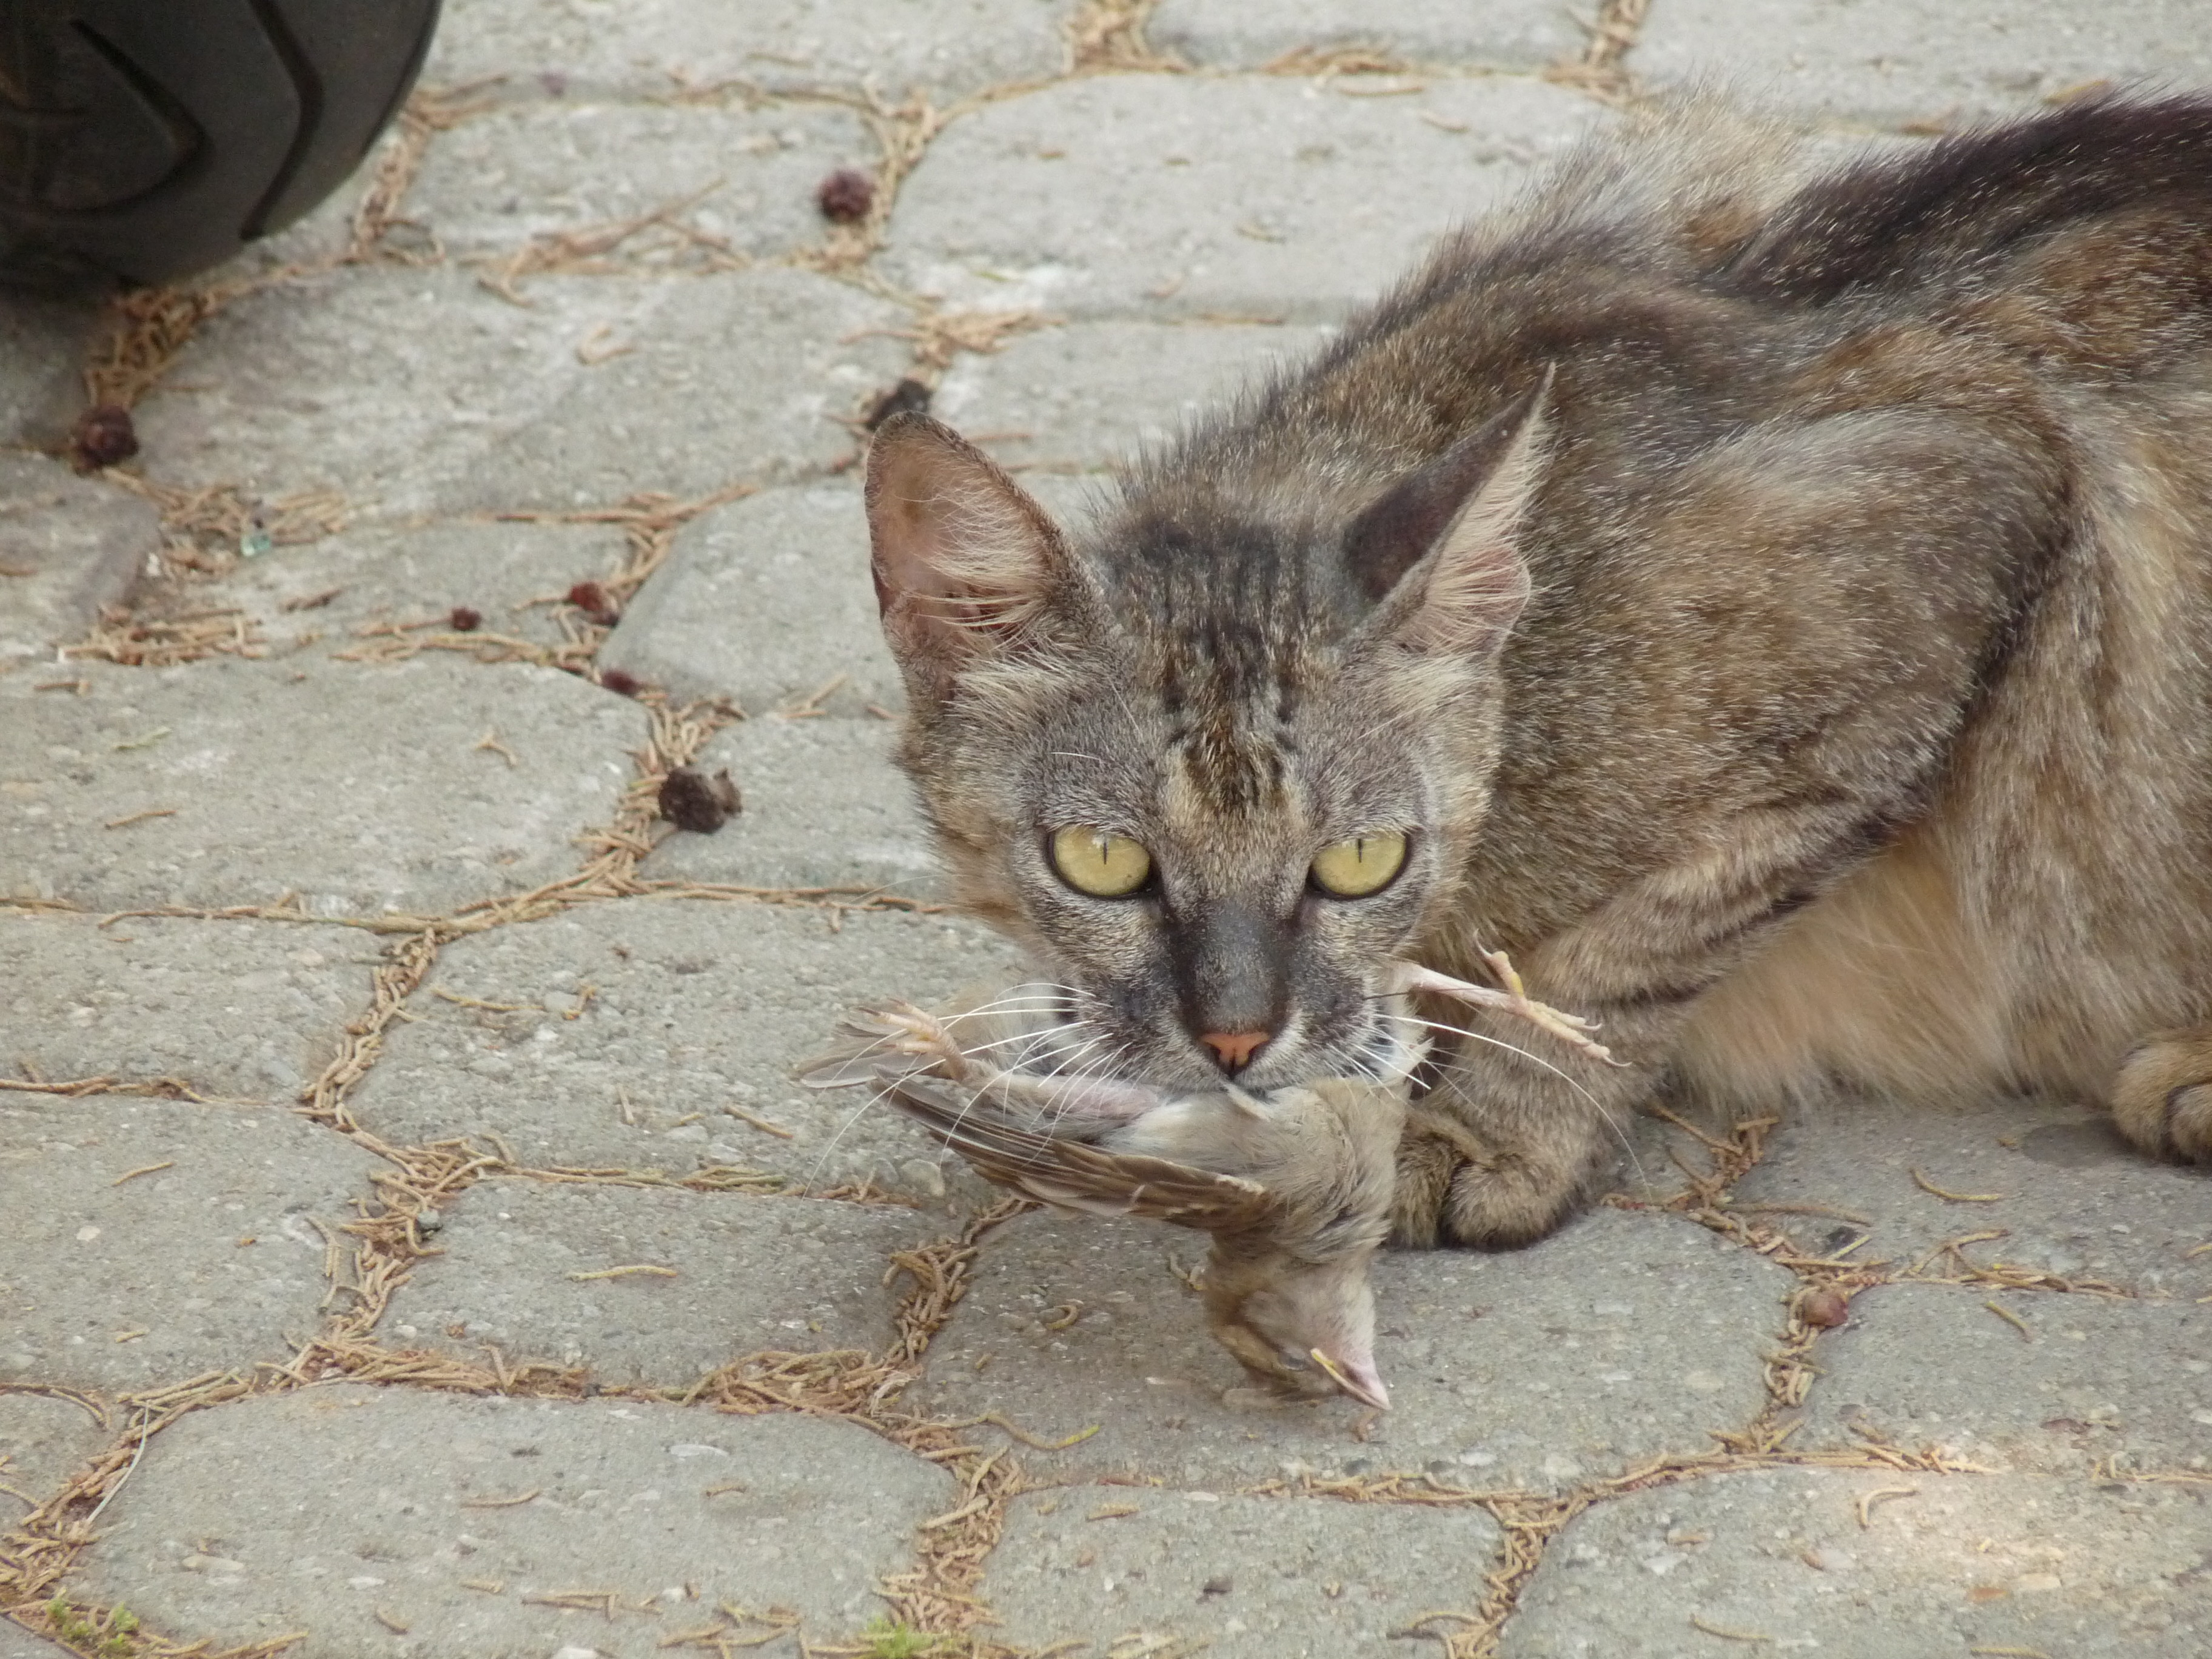 A feral cat carrying a bird carcass.